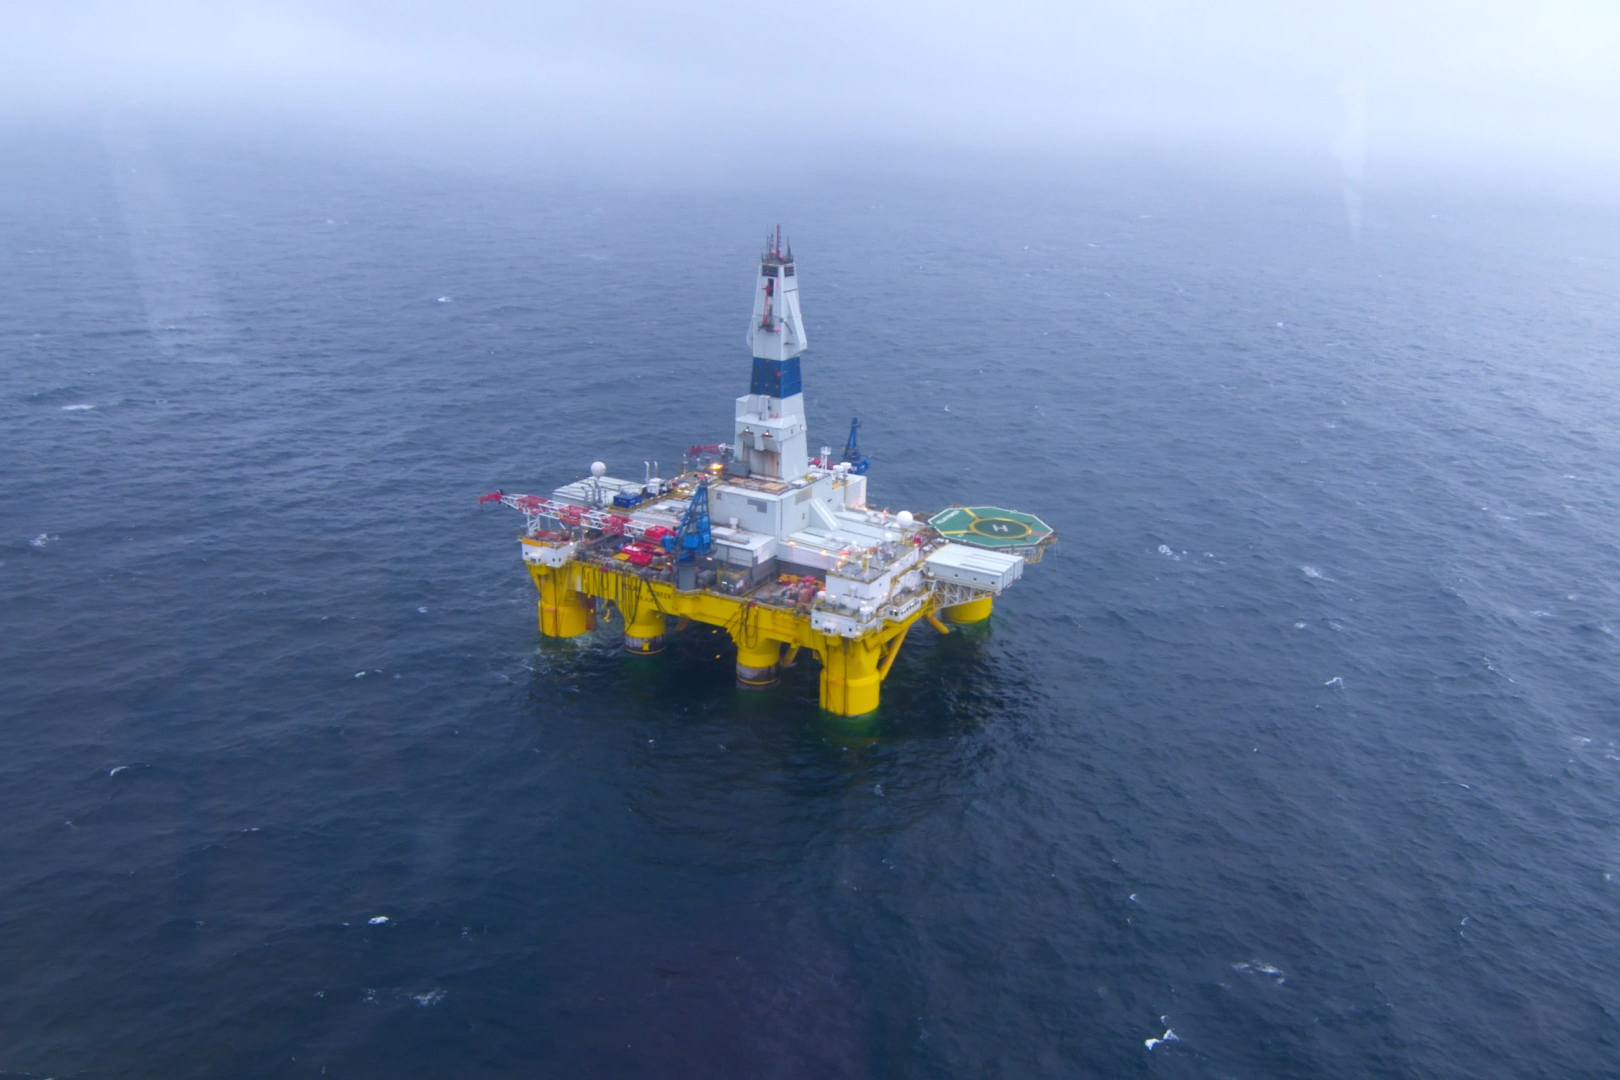 Shell Oil's drilling rig Polar Pioneer operates in the Chukchi Sea in 2015. (Royal Dutch Shell)